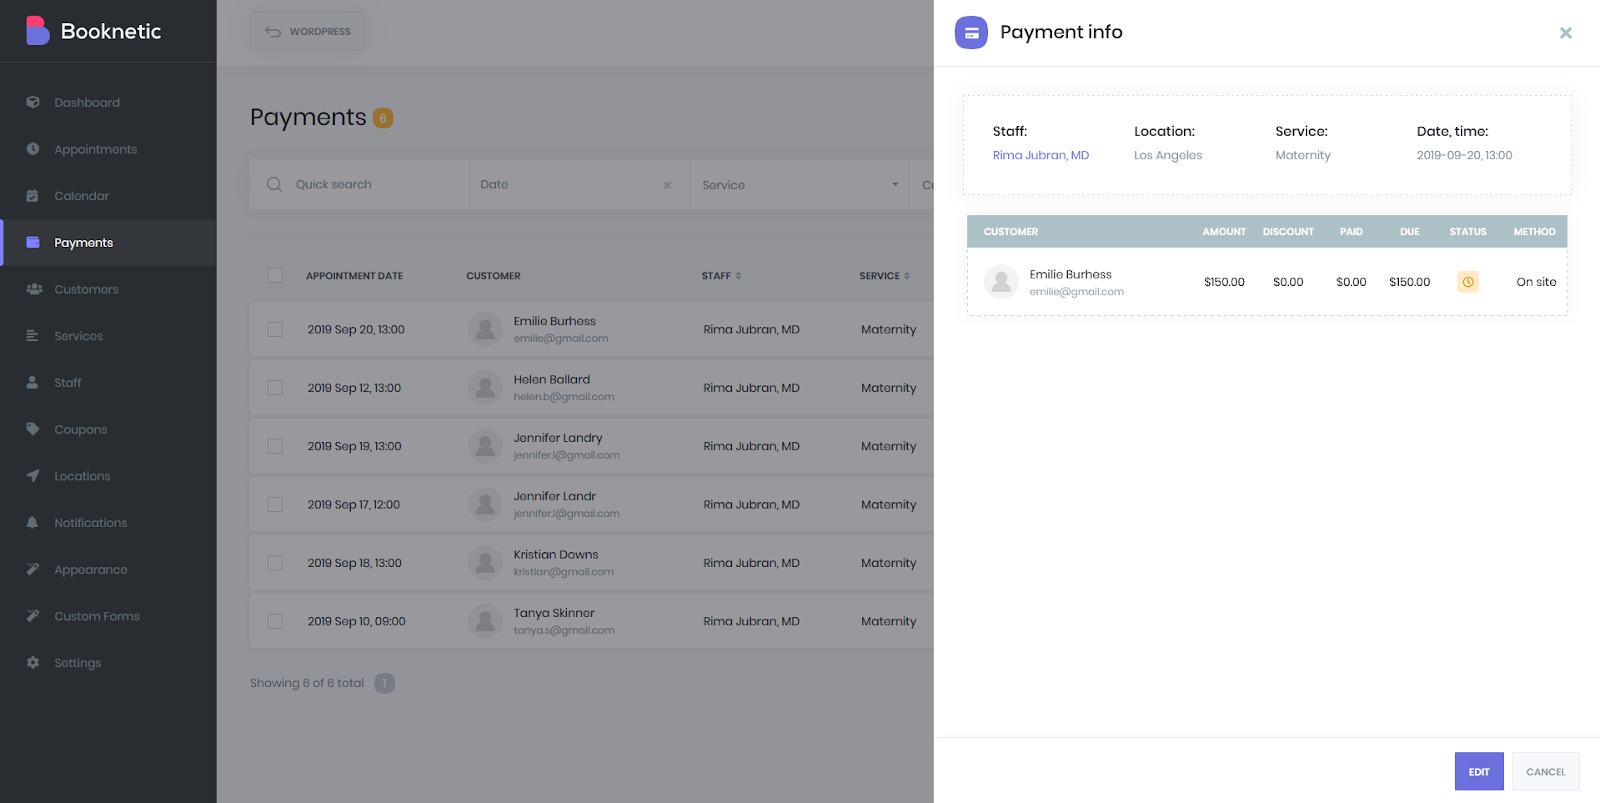 Booknetic Payments documentation